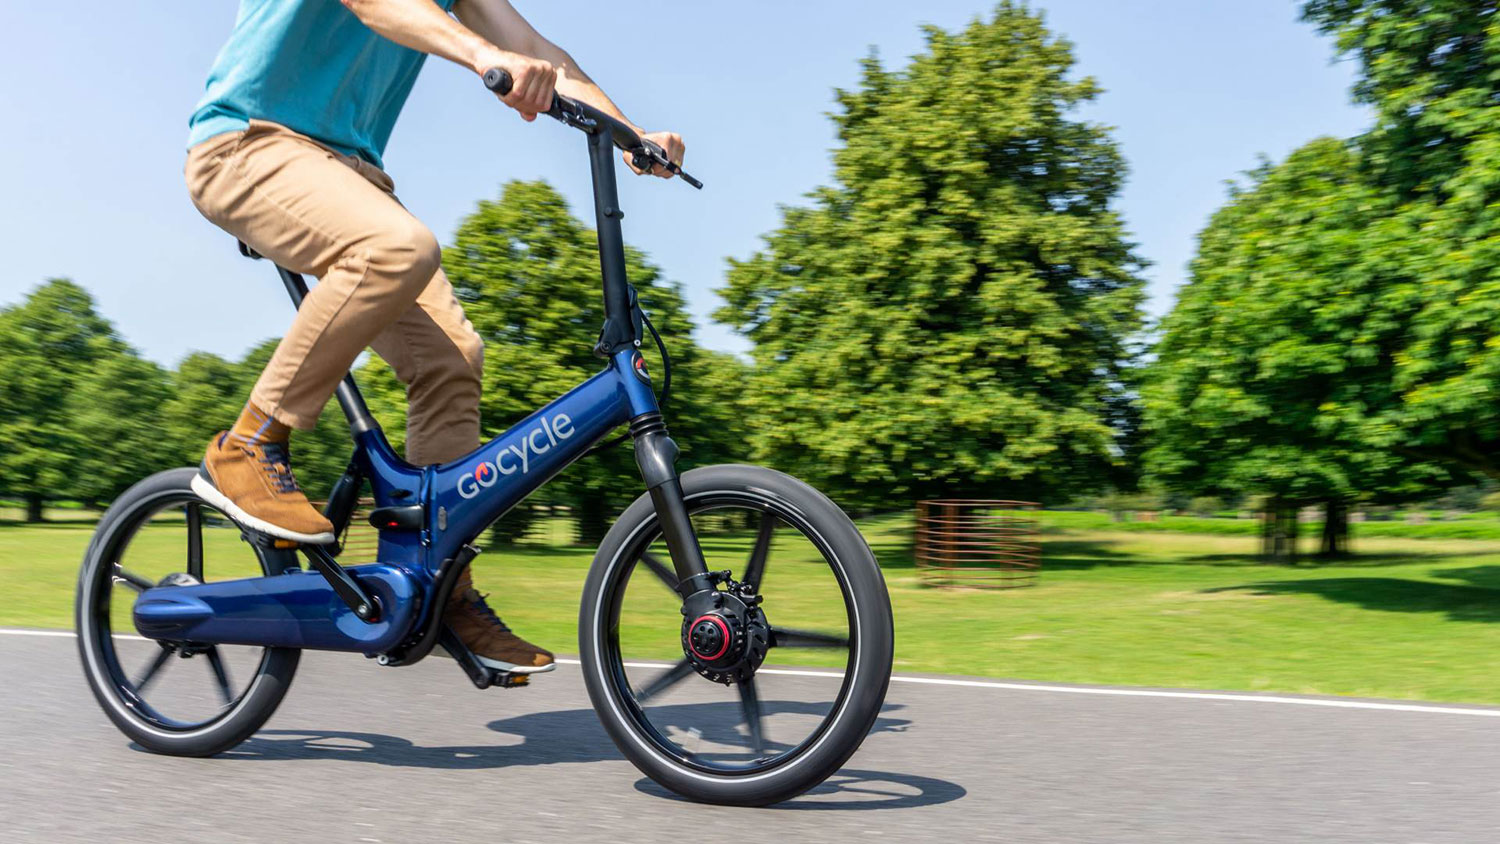 Updated Gocycle GX 2020 fast-folding e-bike now weighs less, more refined